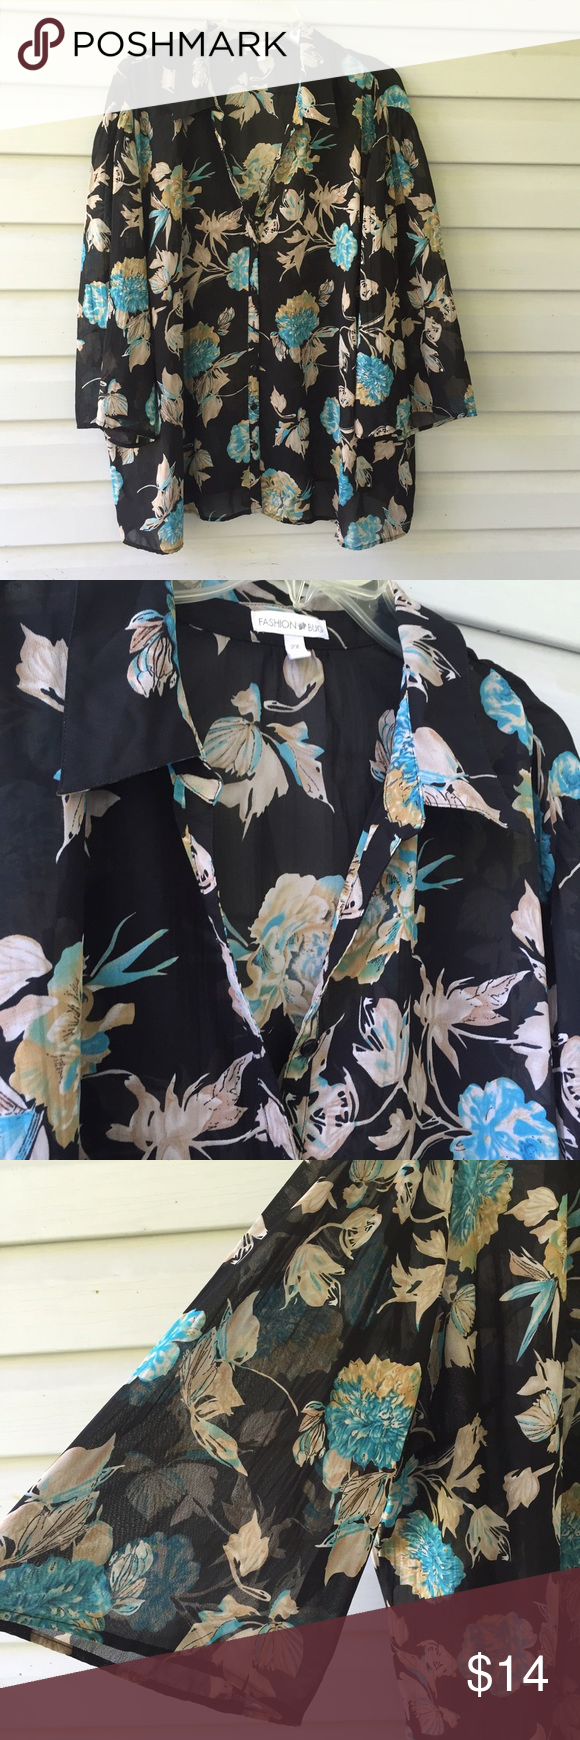 """Black Floral blouse 2X Semi sheer half wide sleeved blouse., Black with floral print button front with loose fit by fashion bug. 62x29"""" Fashion Bug Tops Blouses"""